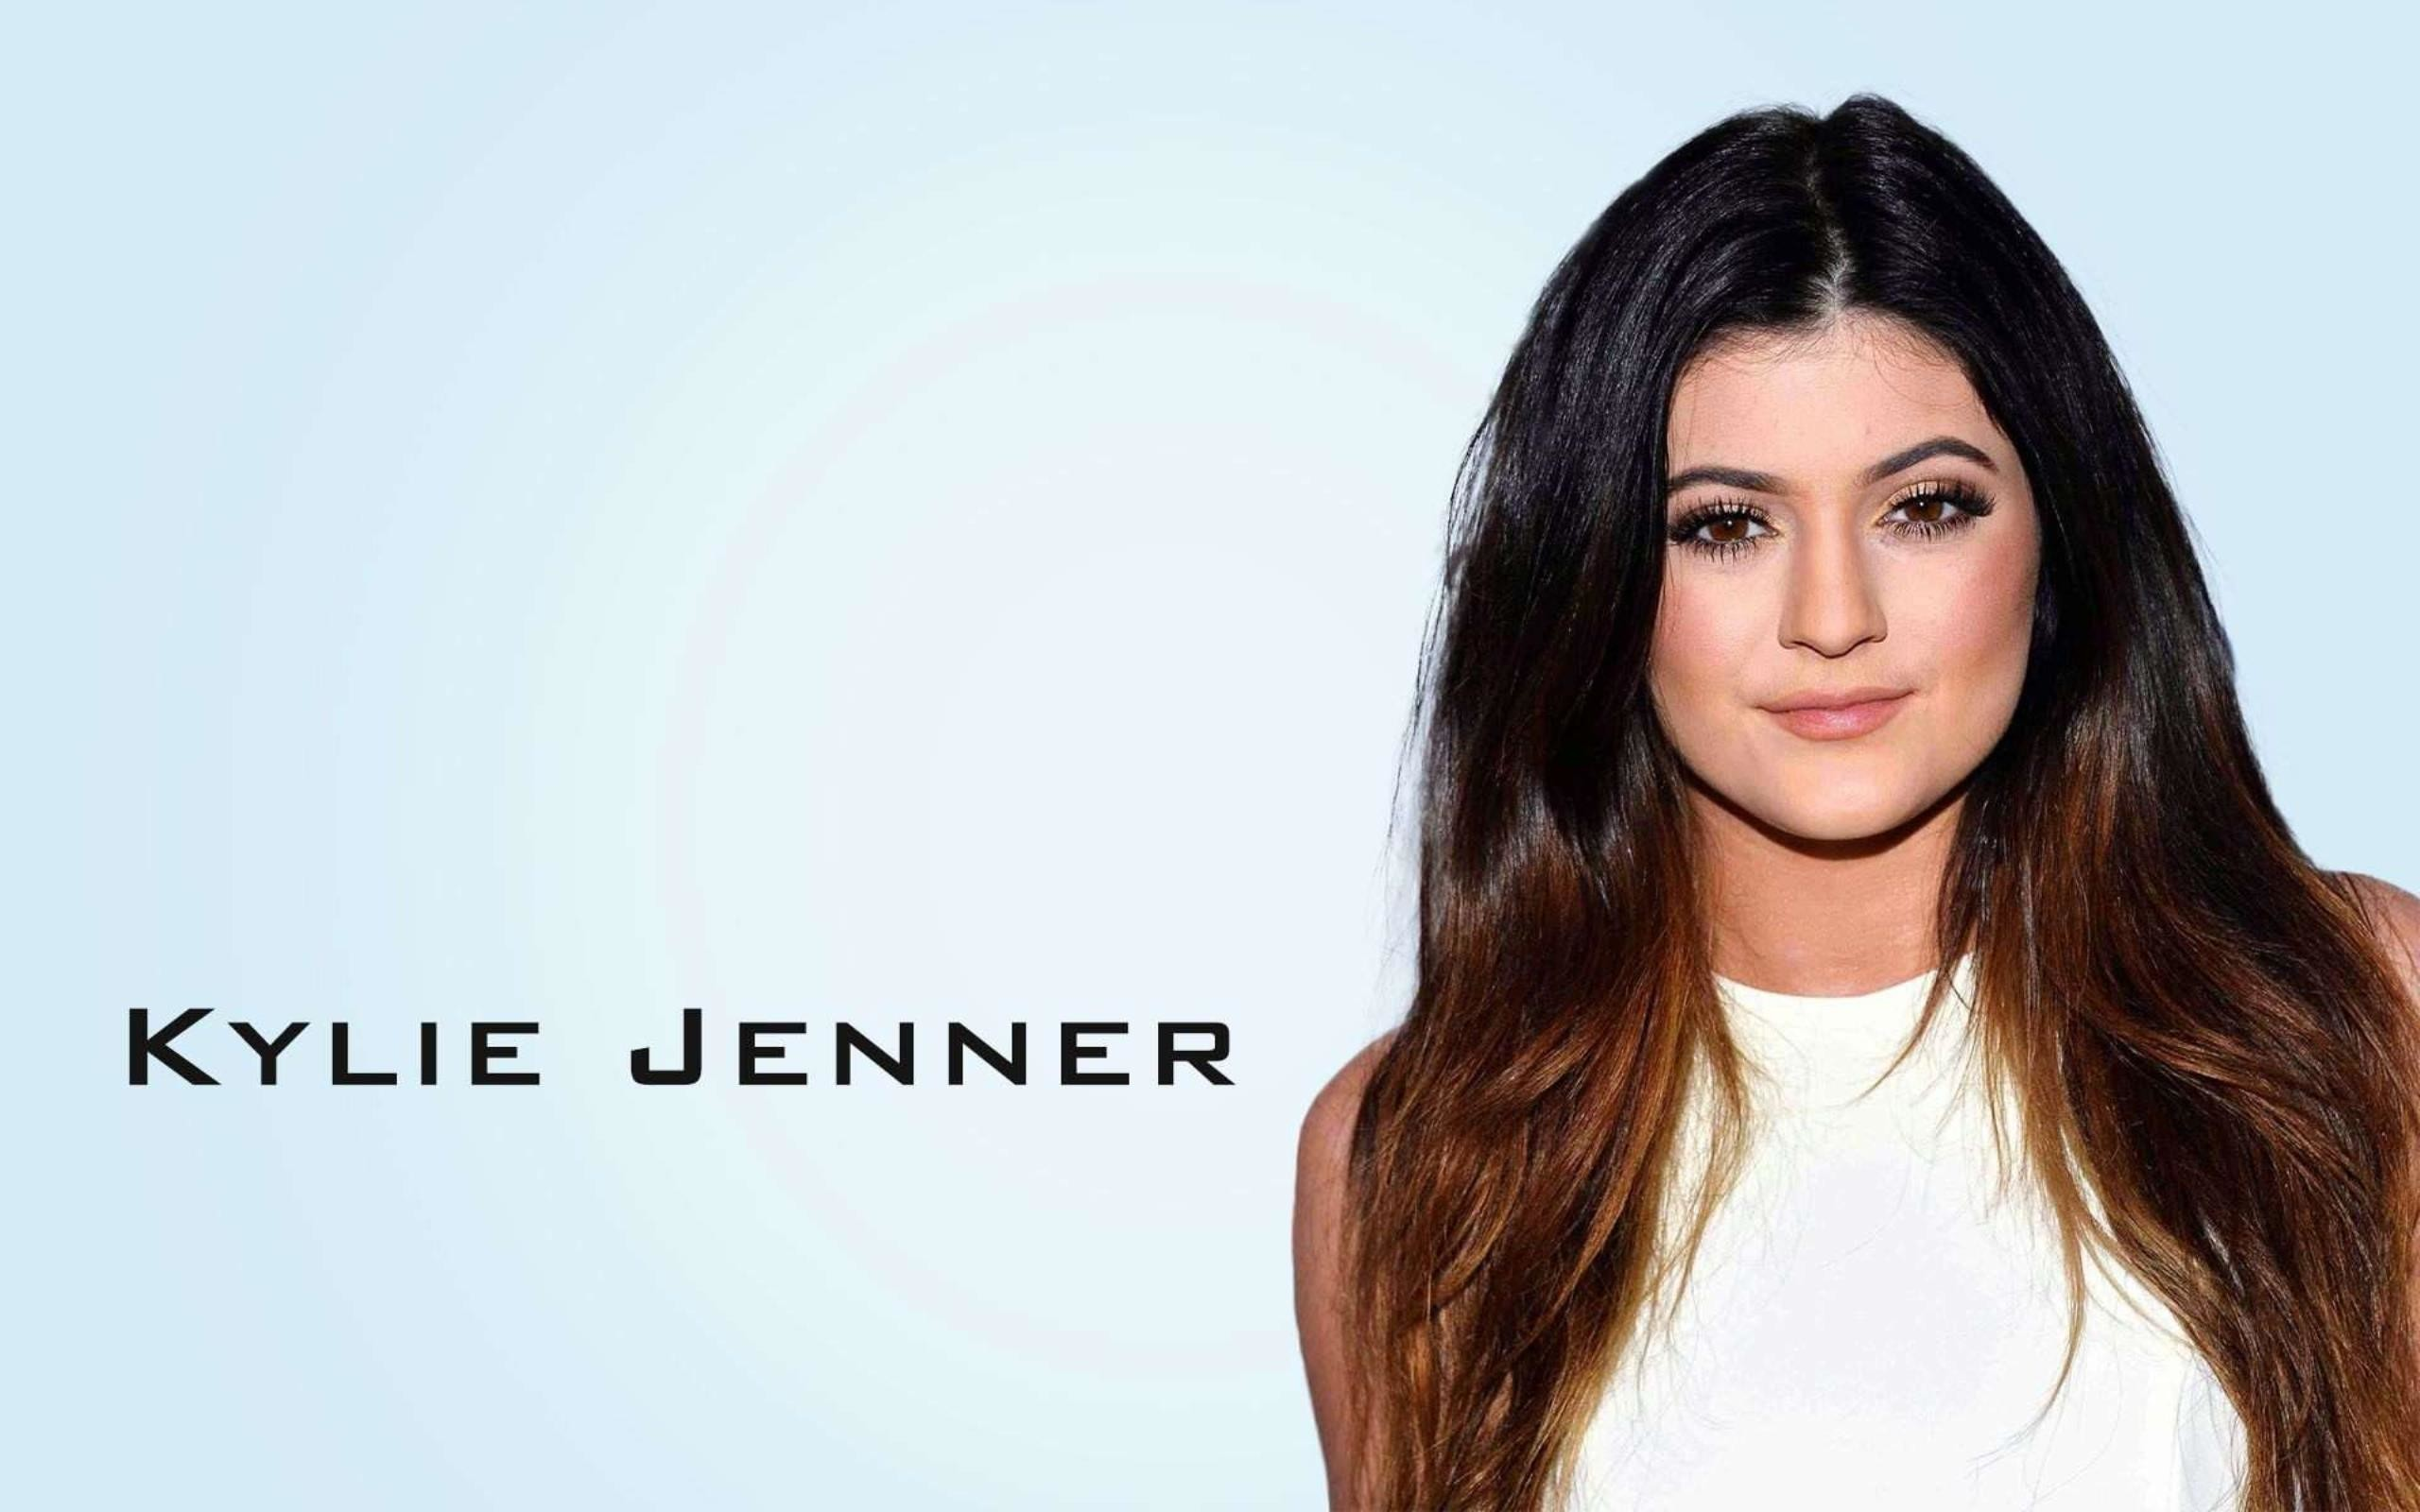 Kylie Jenner Wallpapers Wallpapertag